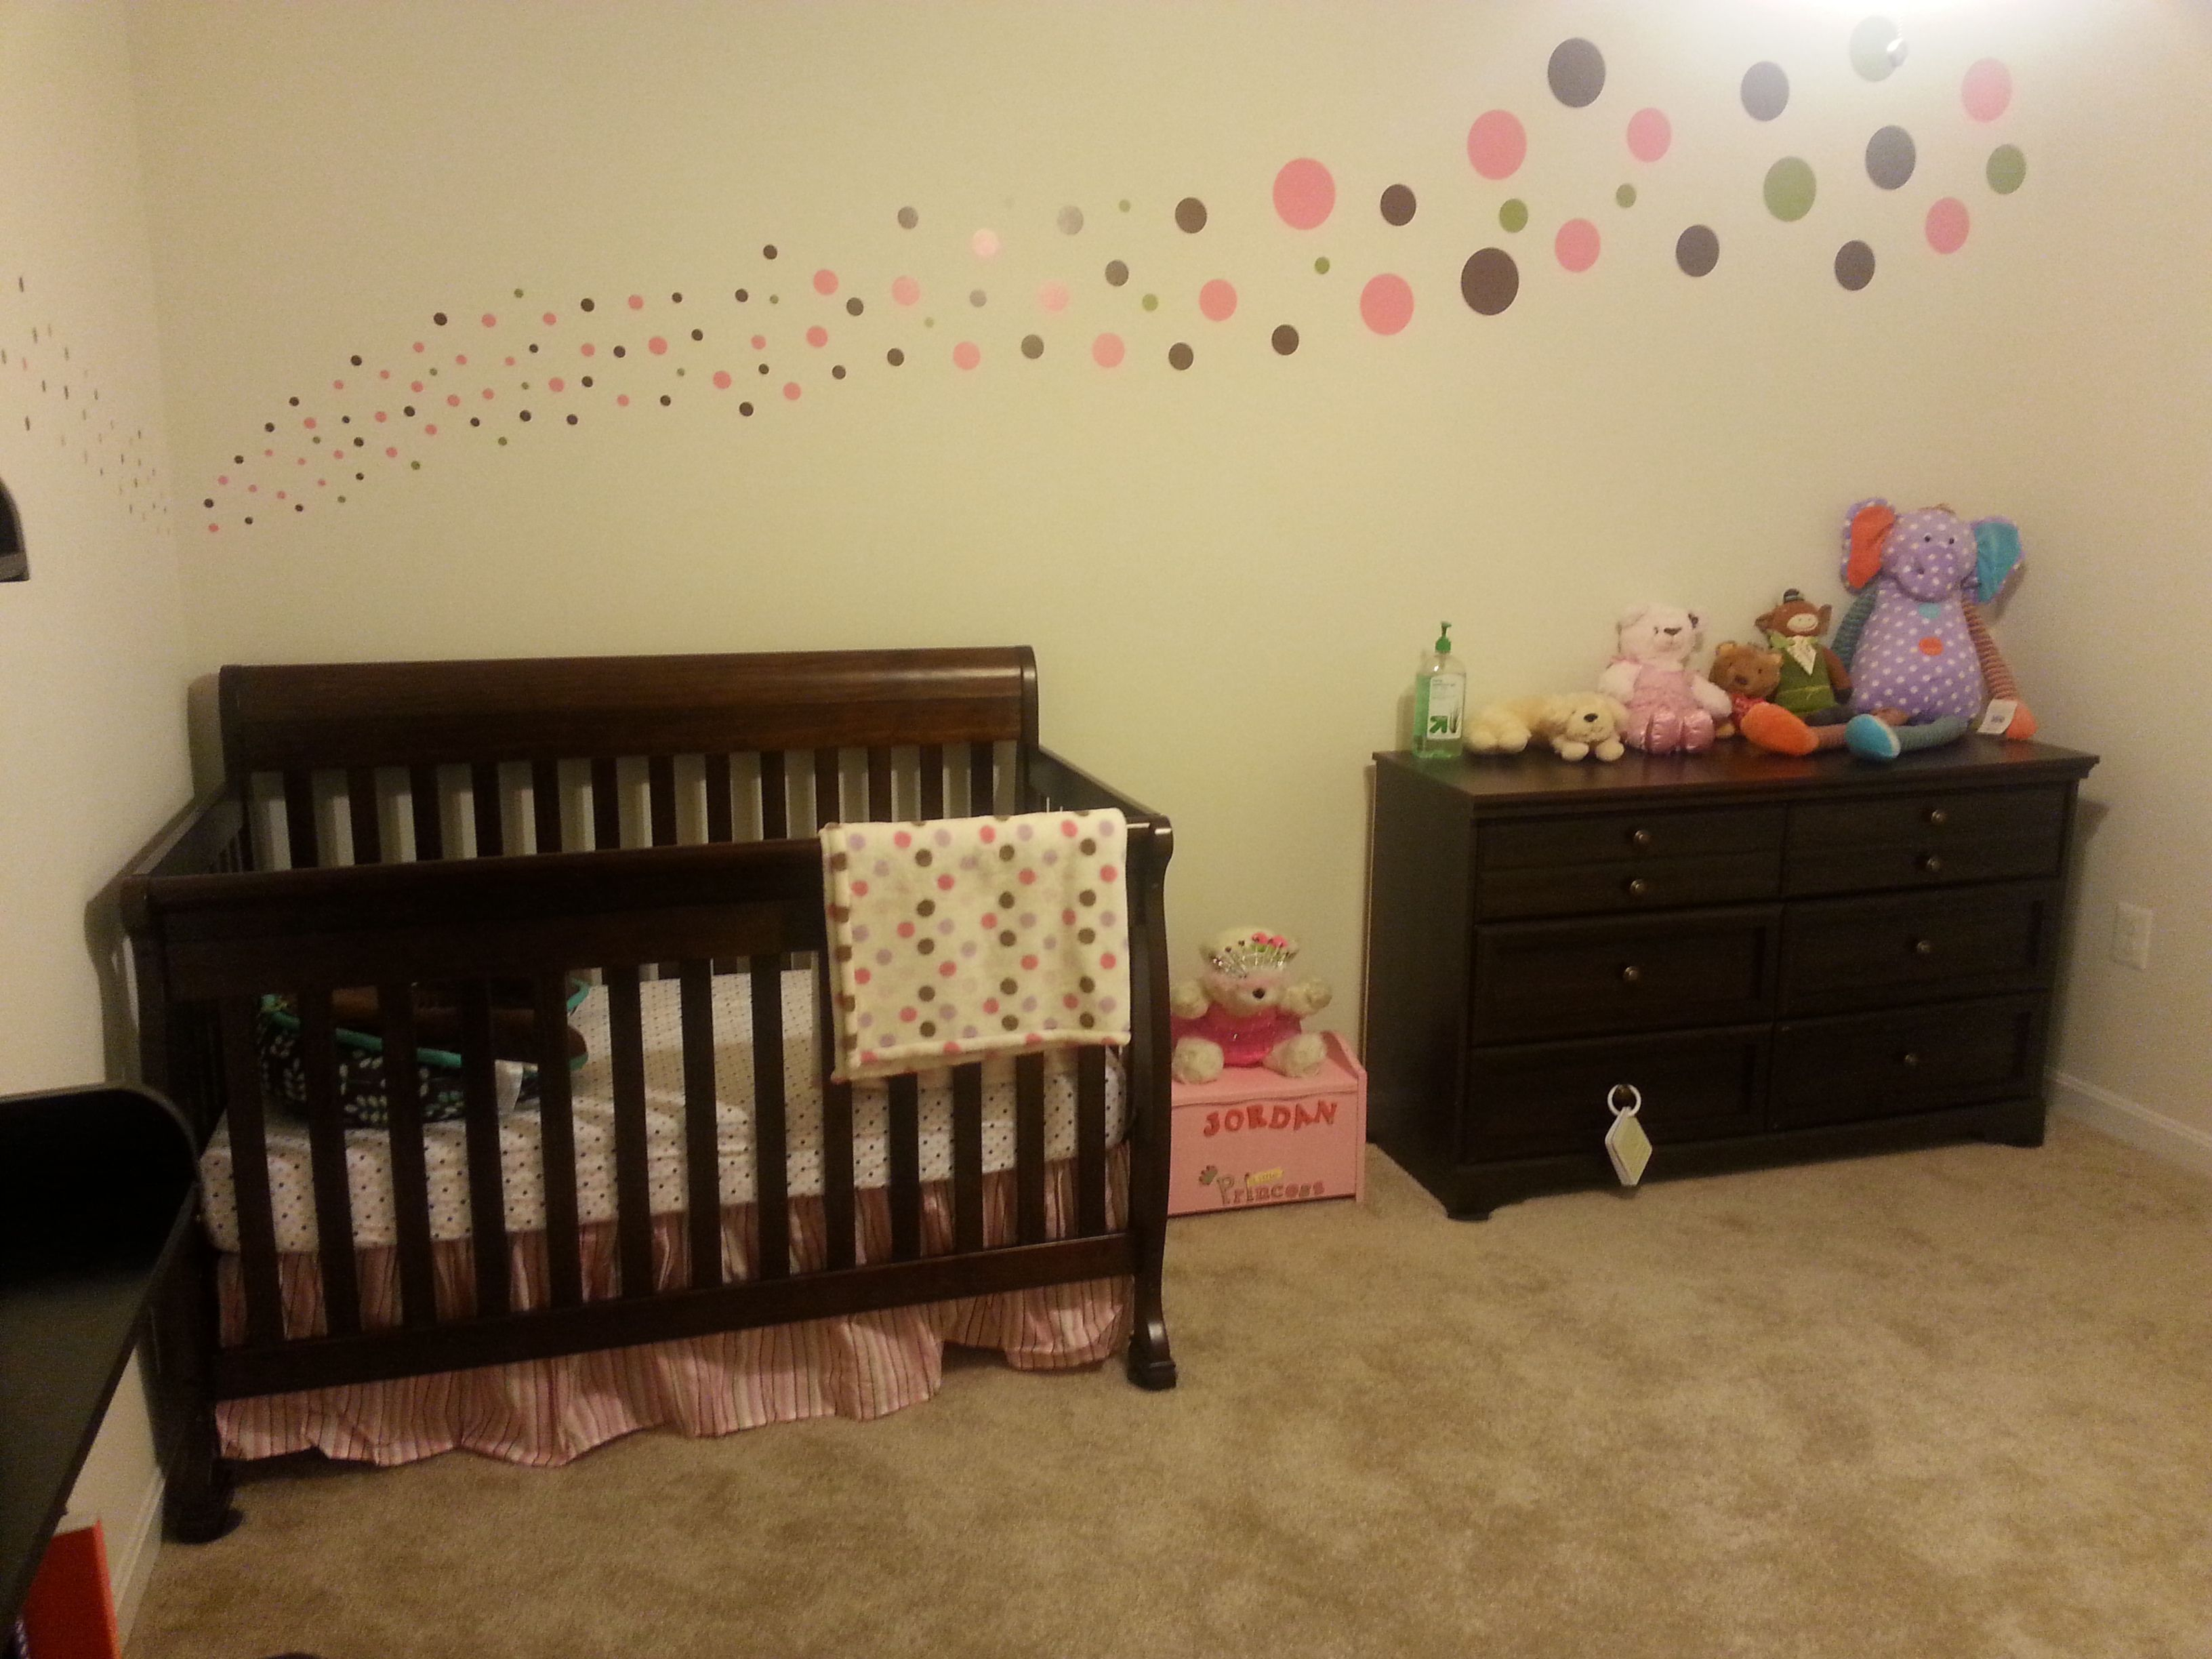 Polka dot nursery decor. | Baby girl | Pinterest | Polka dot nursery ...